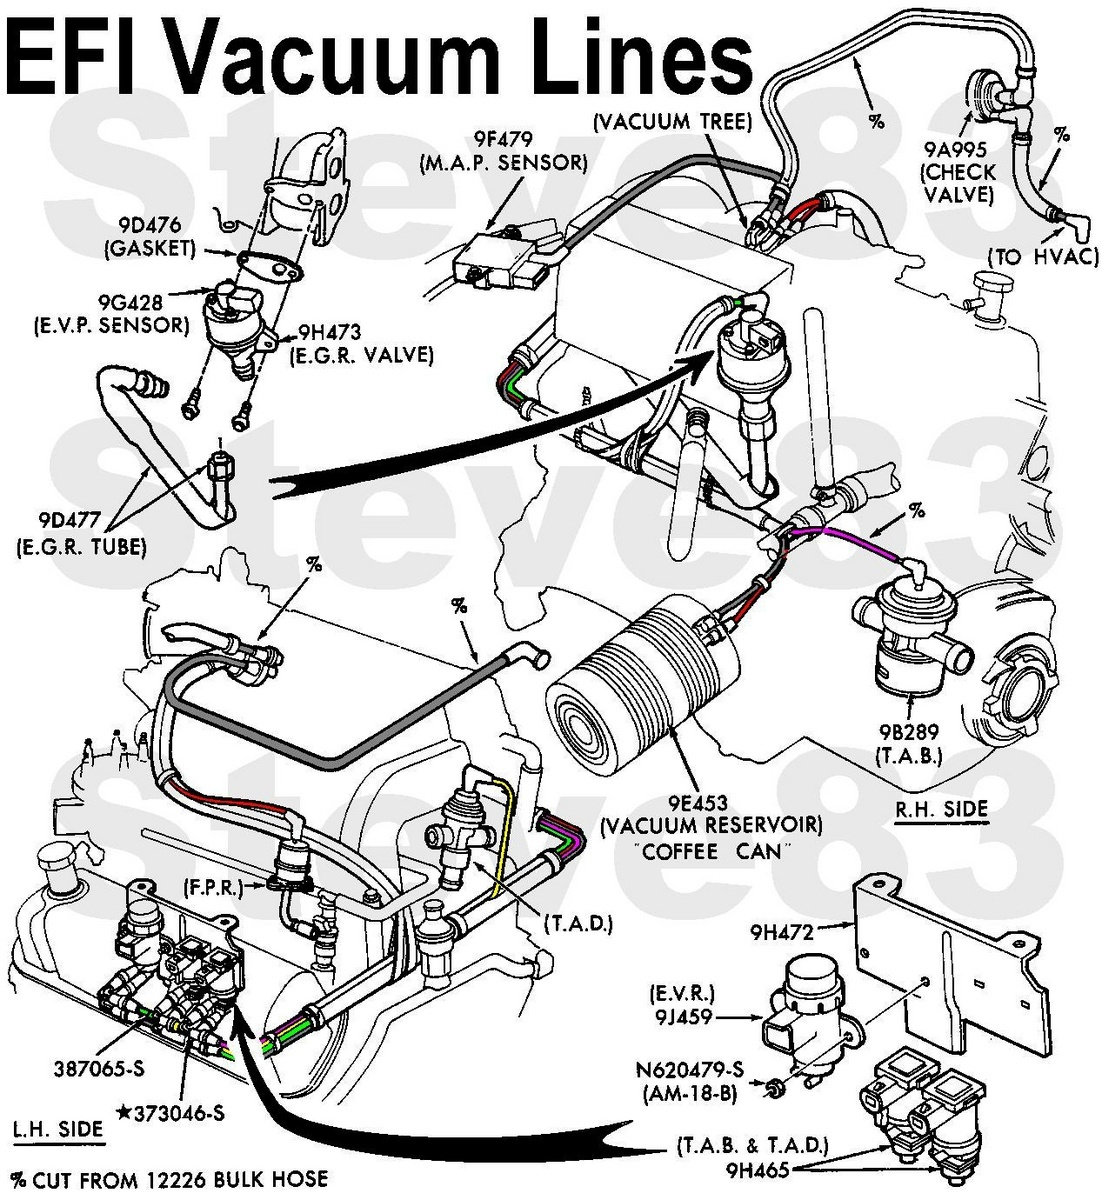 95 buick century heater wiring diagram with 93 Mustang 5 0 Engine Diagram on House Water Pump Location furthermore RepairGuideContent additionally Location Orifice Tube Pontiac also Pontiac 3400 Engine O2 Sensor Location also 2001 2006 Acura Single Aftermarket.